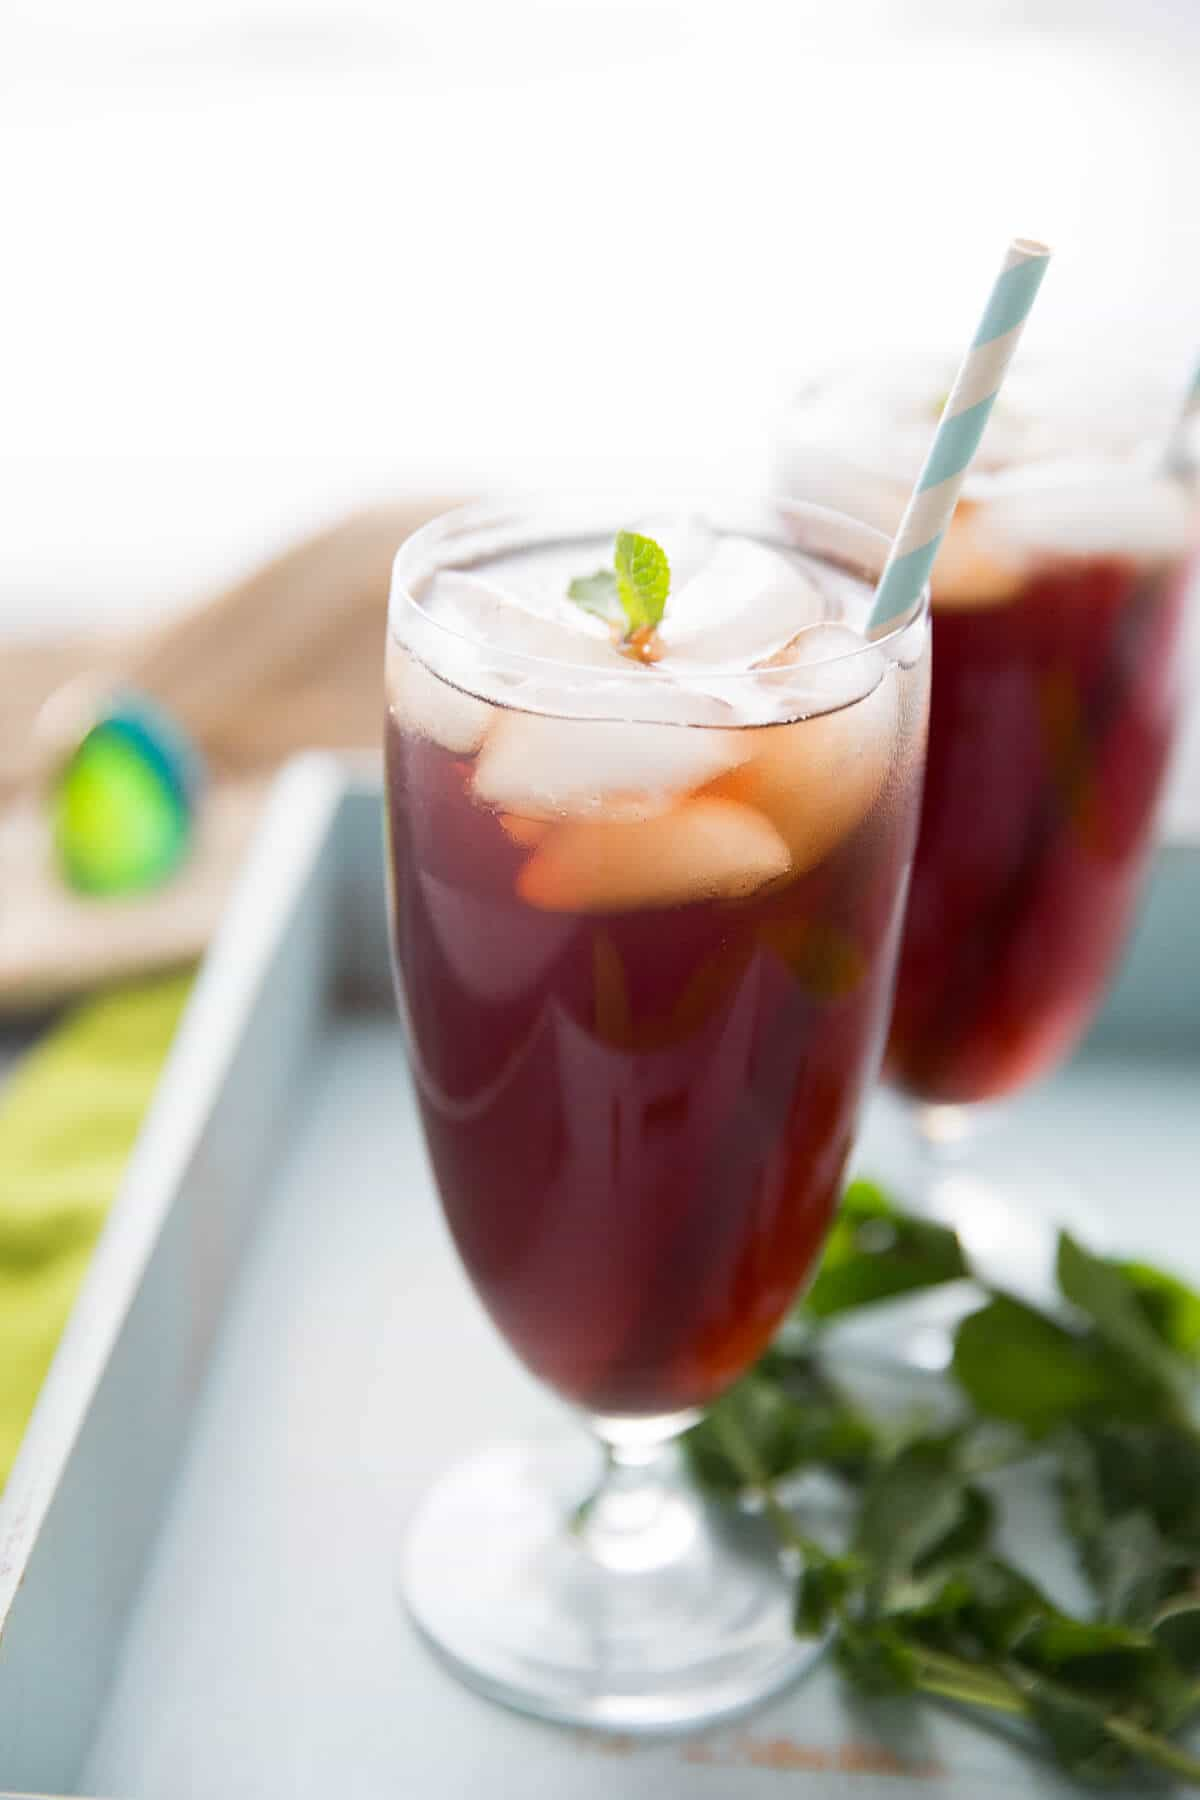 Iced tea is a must in the summertime, you have to try this simple pomegranate green tea recipe!